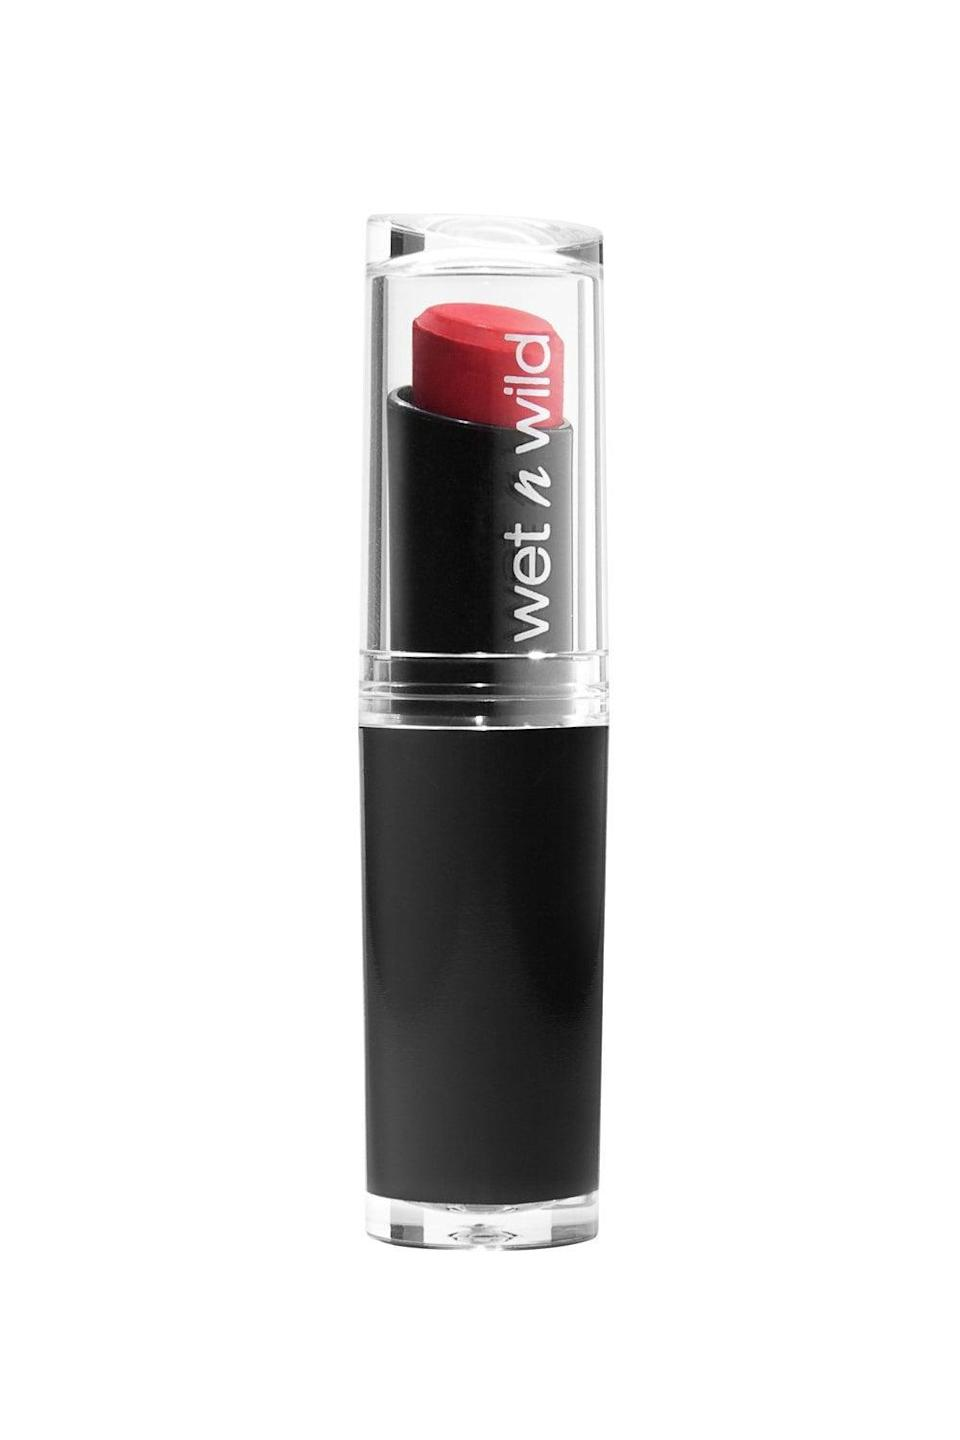 <p>If you love the colors and long wear time of MAC lipsticks but can't convince yourself to shell out $17, check out these affordable <span>Wet N Wild MegaLast Lip Colors</span> ($6). The colors Red Velvet and Sugar Plum Fairy are close dupes for popular MAC lipsticks like Ruby Woo and Rebel. In addition to their range of popular colors, these lipsticks include natural enzymes in their formula that hydrate your lips.</p>